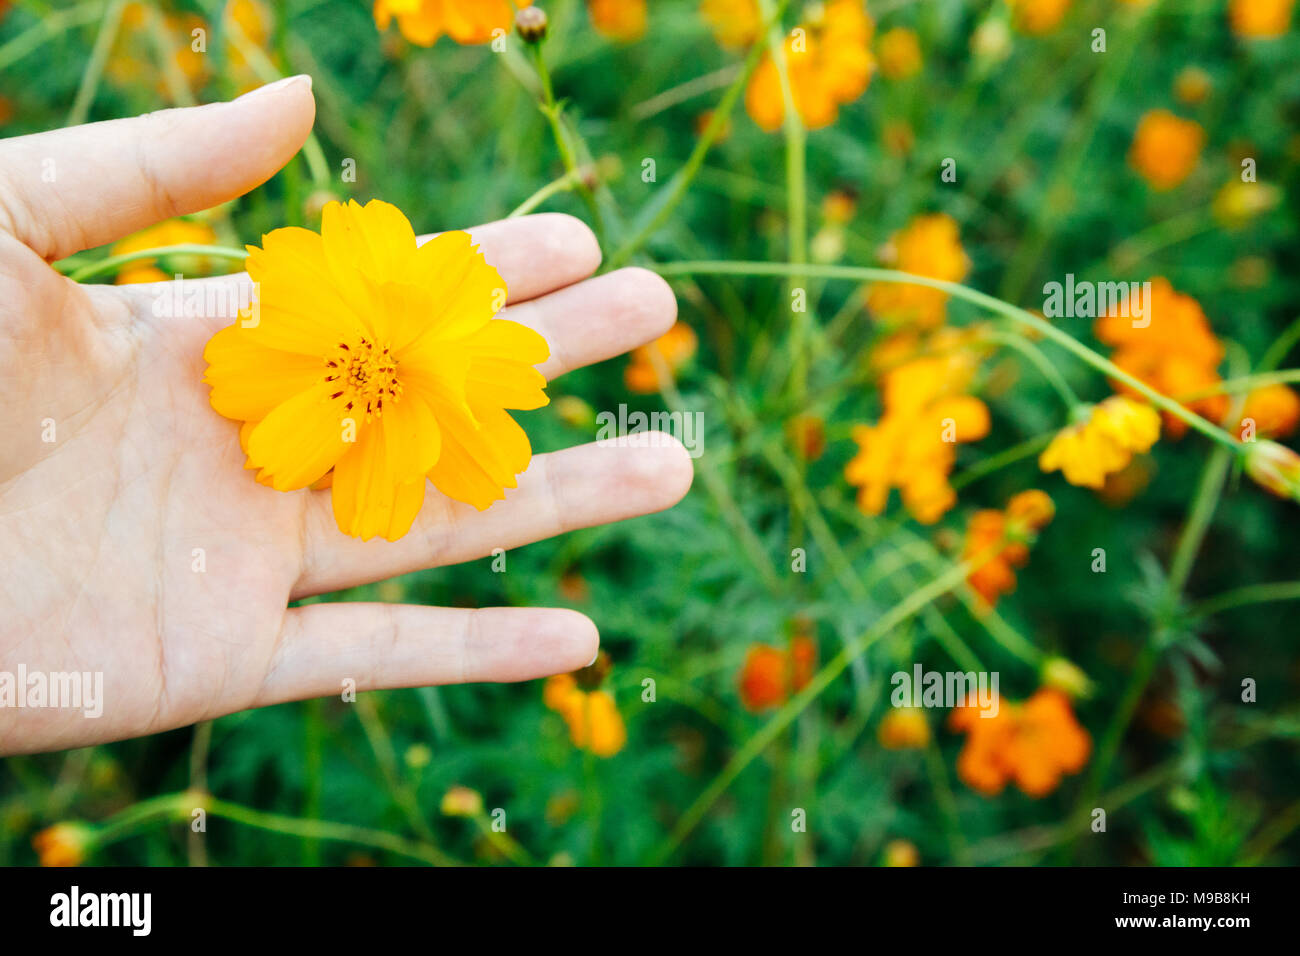 South Asia Yellow Flower Stock Photos South Asia Yellow Flower